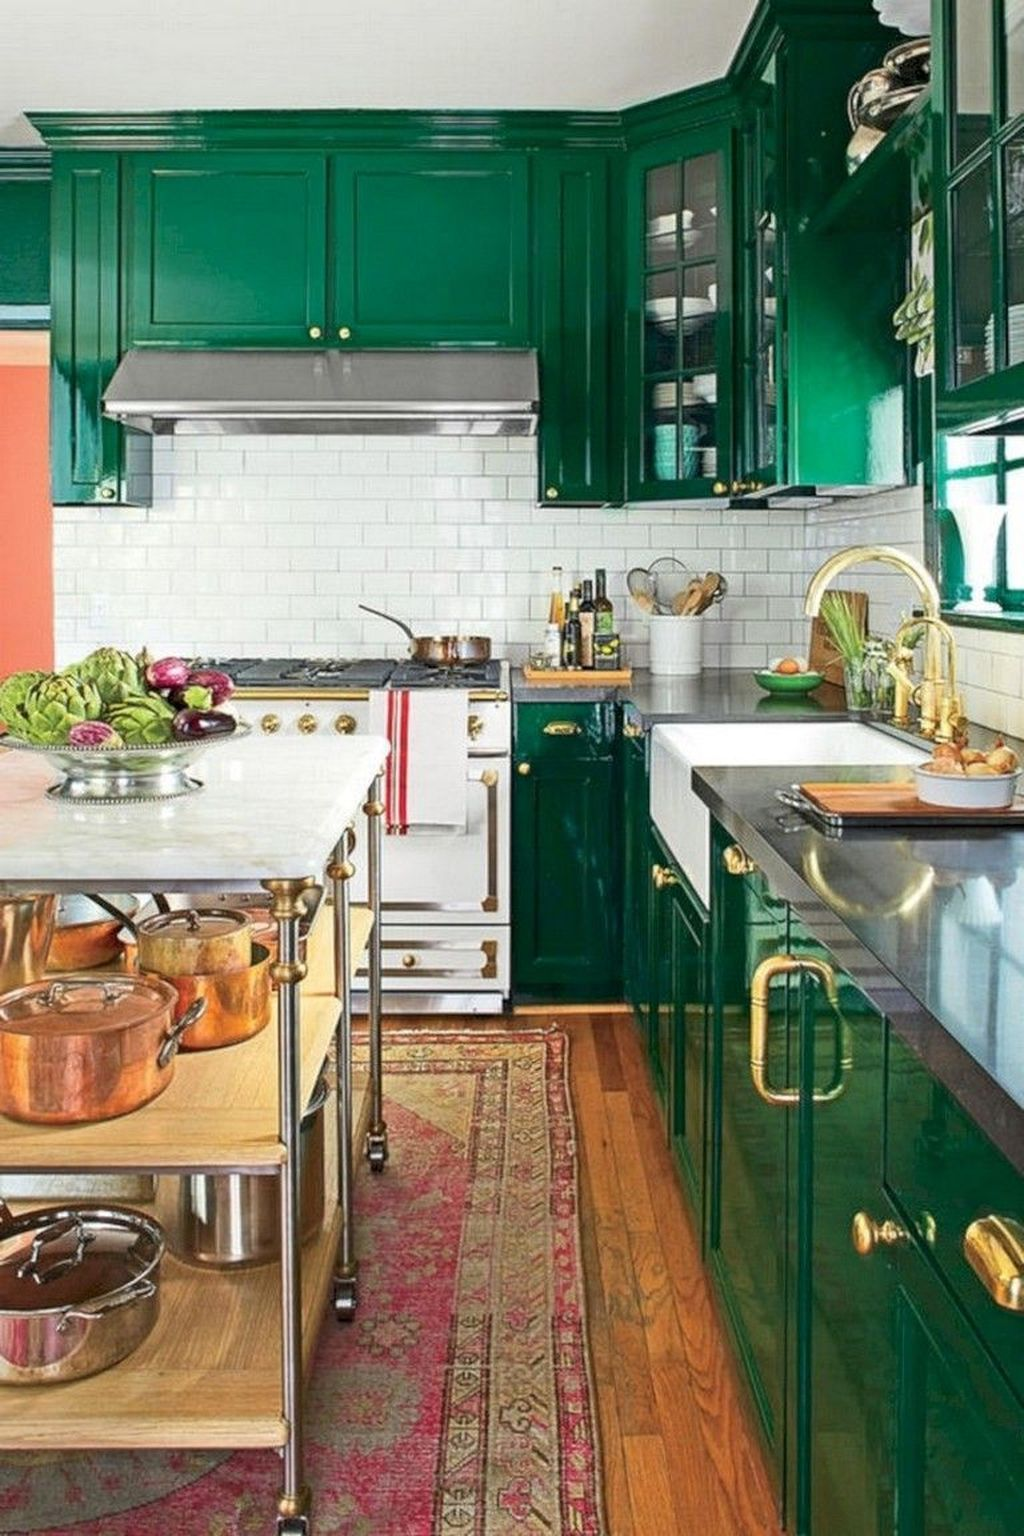 30 lovely colorful kitchen decorating ideas in 2020 eclectic kitchen green kitchen cabinets on kitchen makeover ideas id=57872